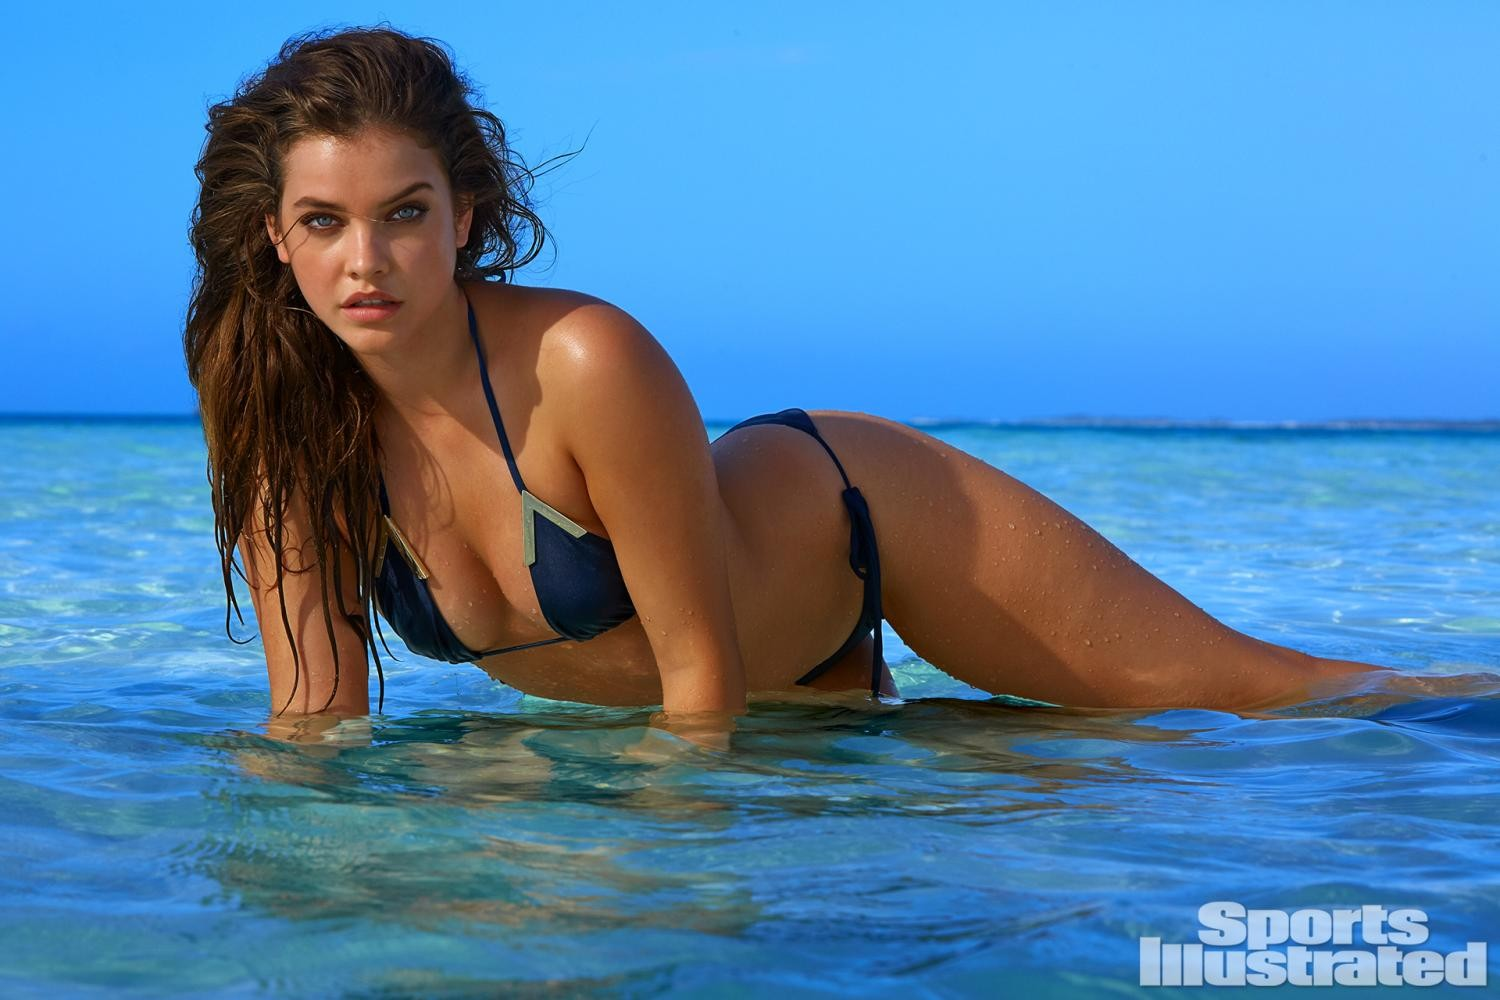 barbara-palvin-sports-illustrated-sexy-photo-shoot-9.jpg